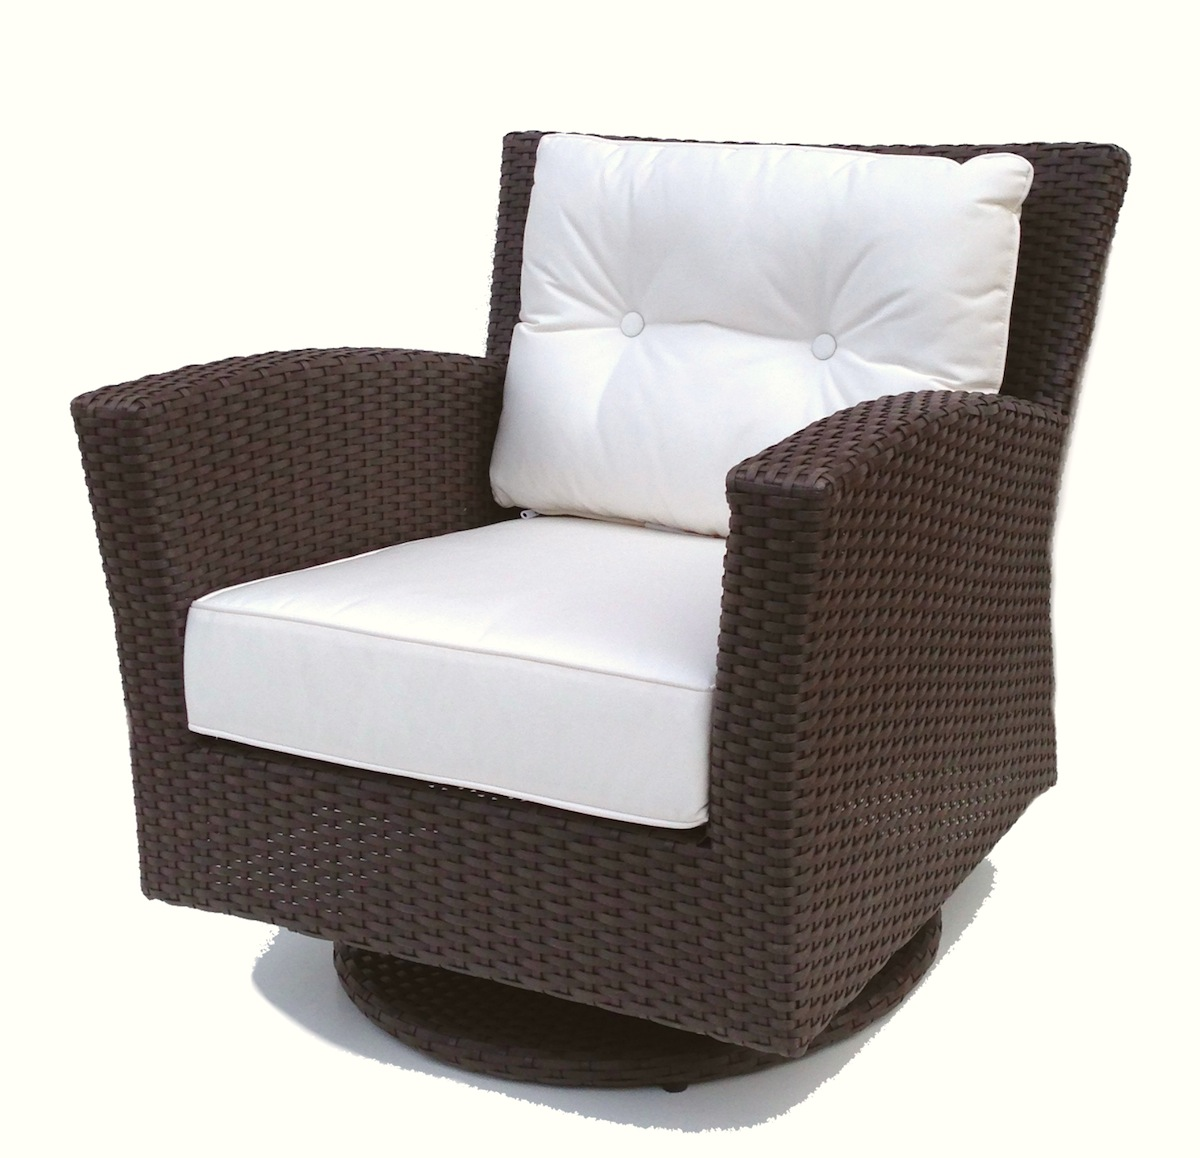 wicker chairs outdoor wicker swivel rocker chair - sonoma KKVSFBV